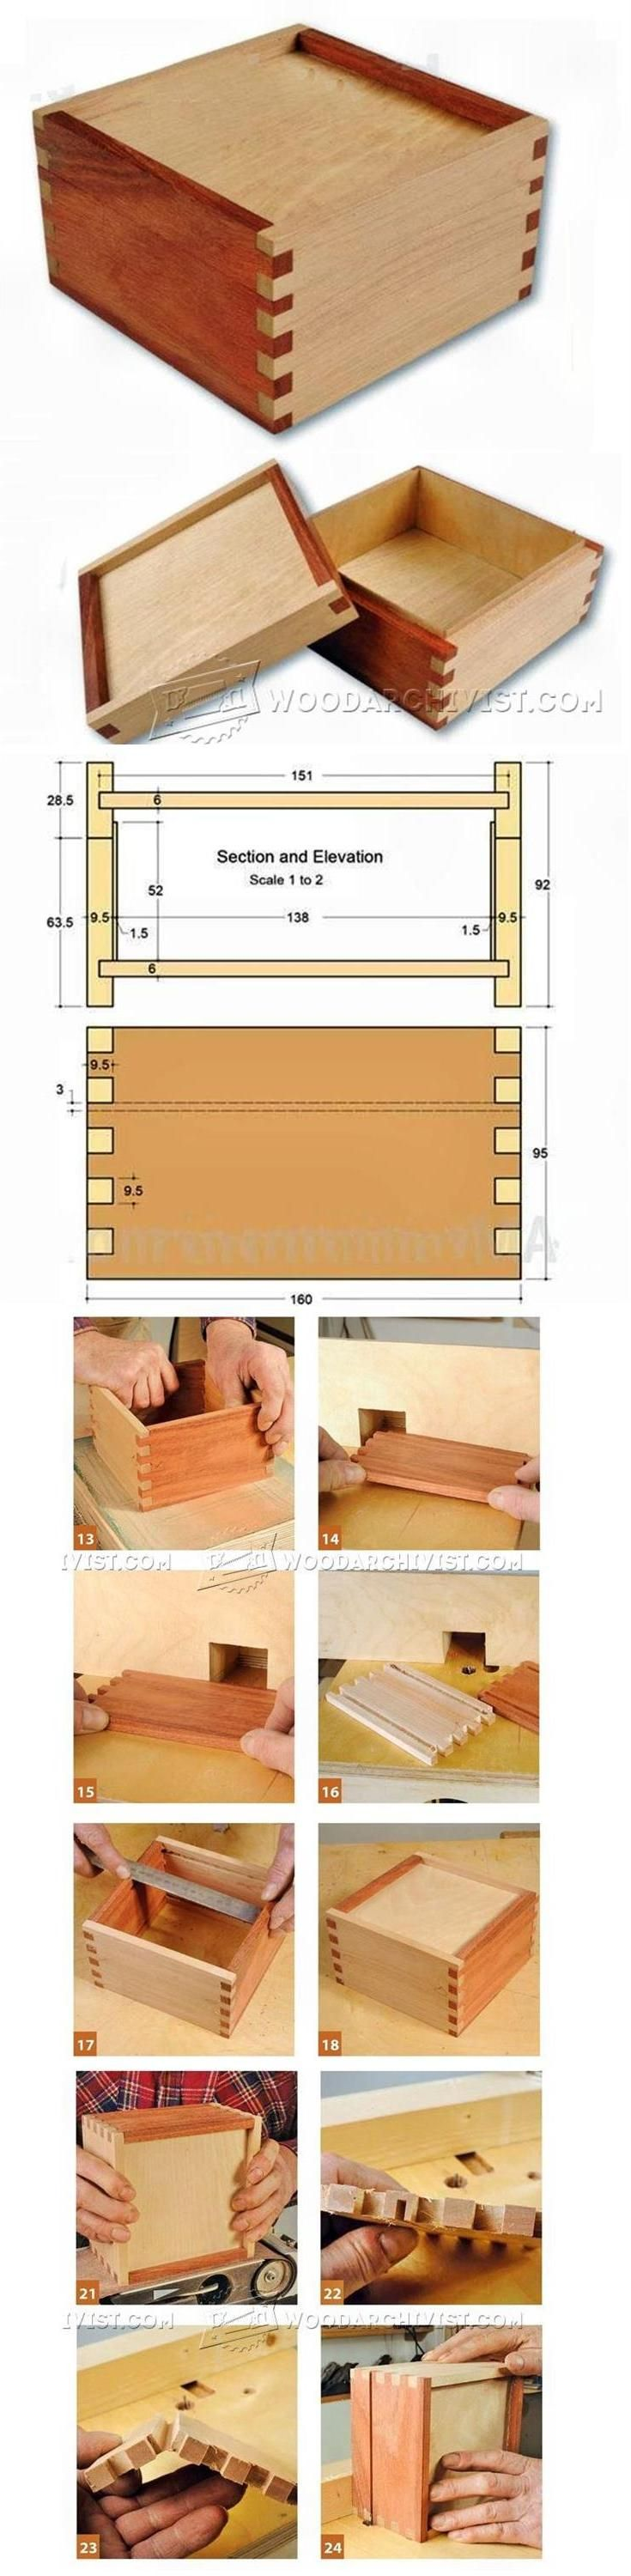 Finger Joint Box Plans - Woodworking Plans and Projects   WoodArchivist.com